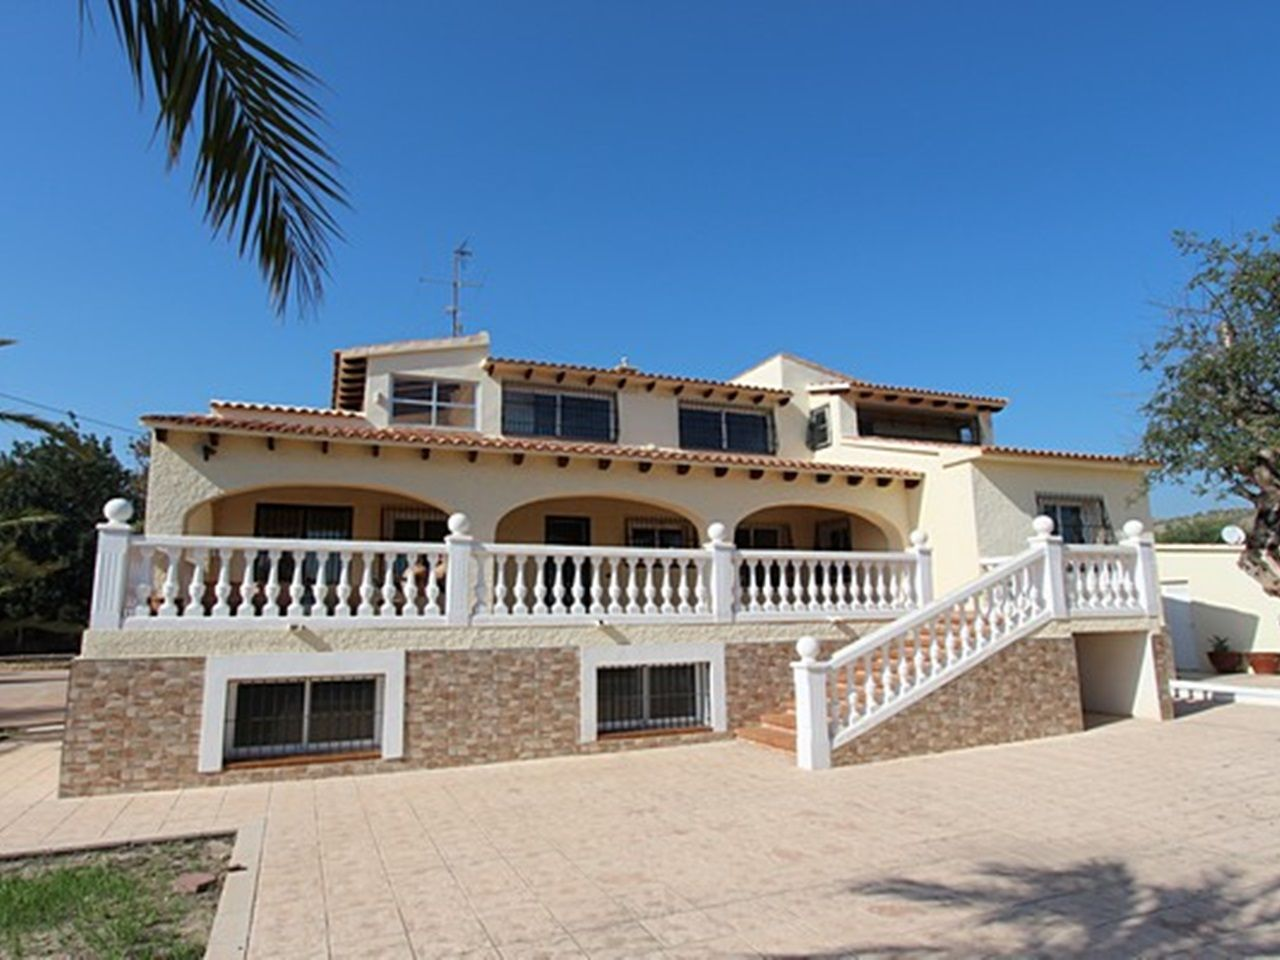 Ref:FVJ-JS1027 Villa For Sale in El Campello